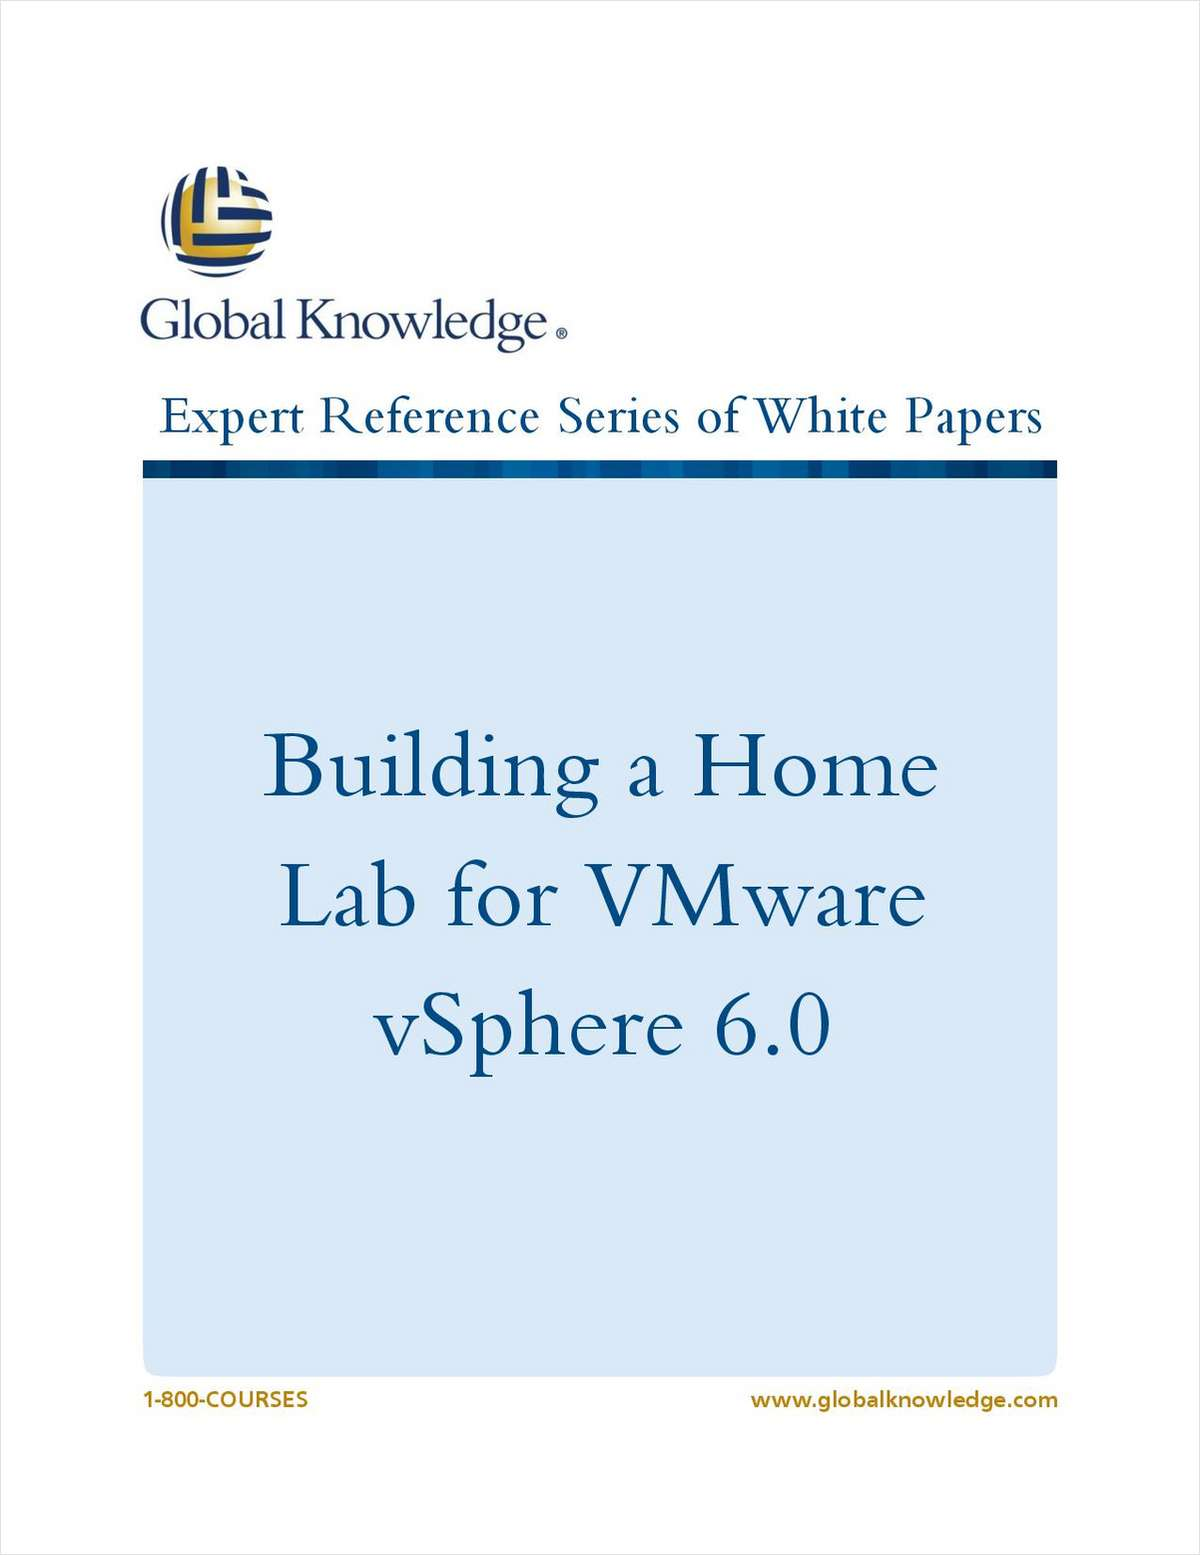 Building a Home Lab for VMware vSphere 6.0